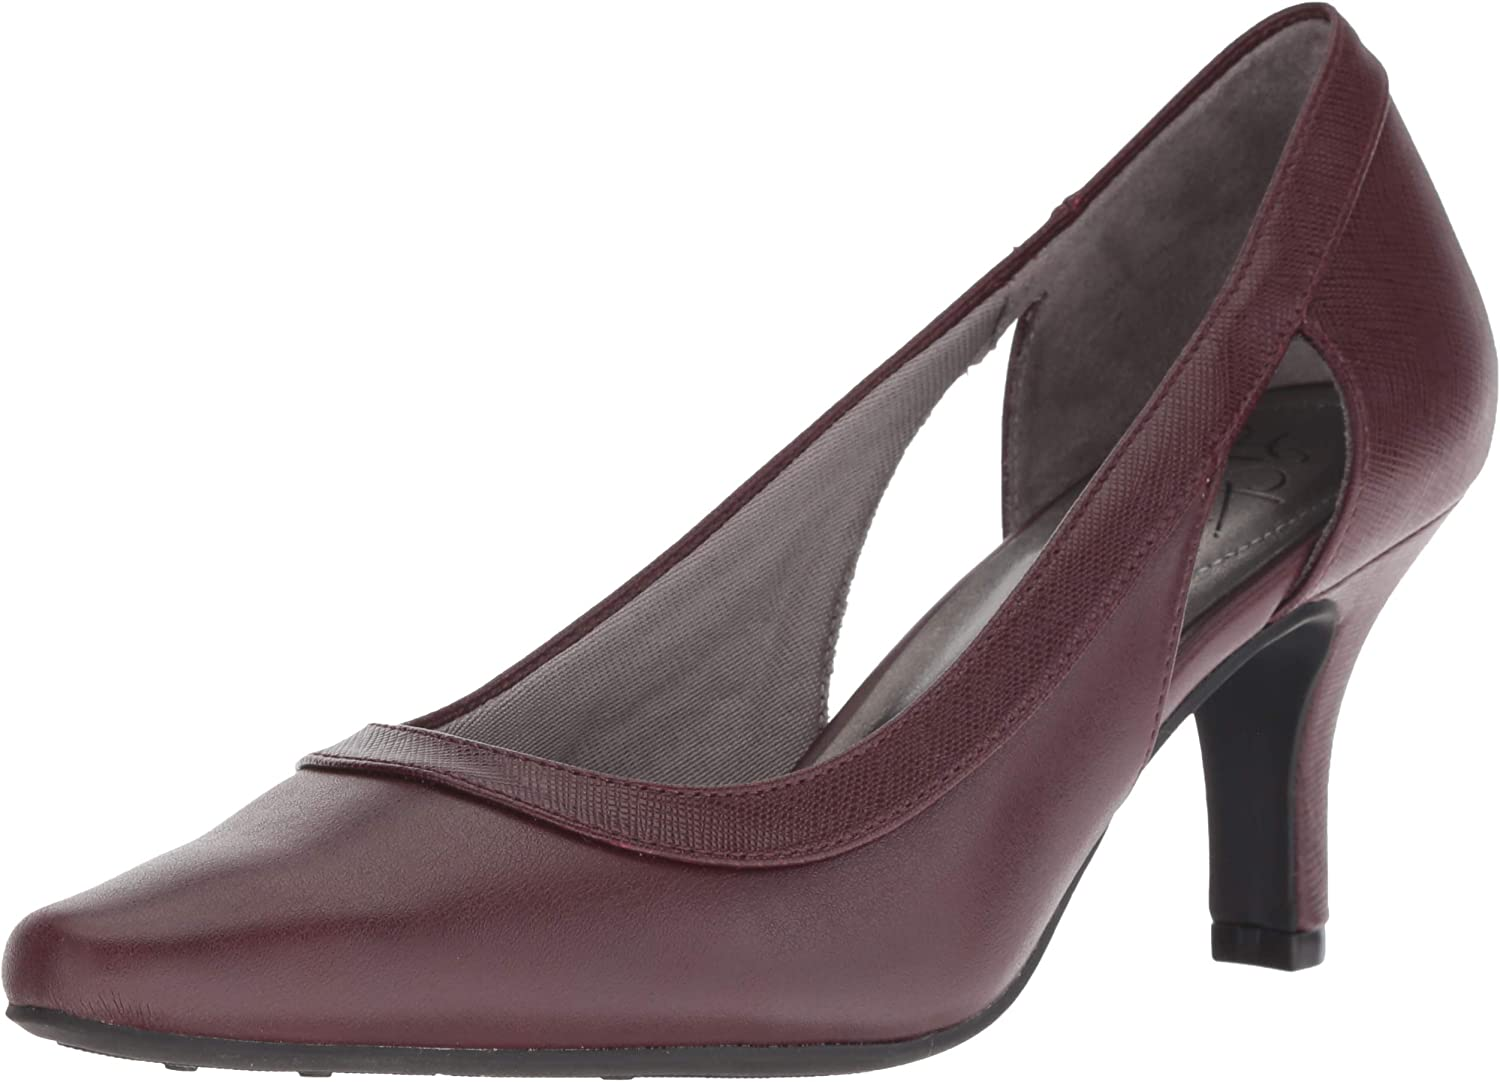 LifeStride Womens Kimberly Mid-Heel Pump Pump